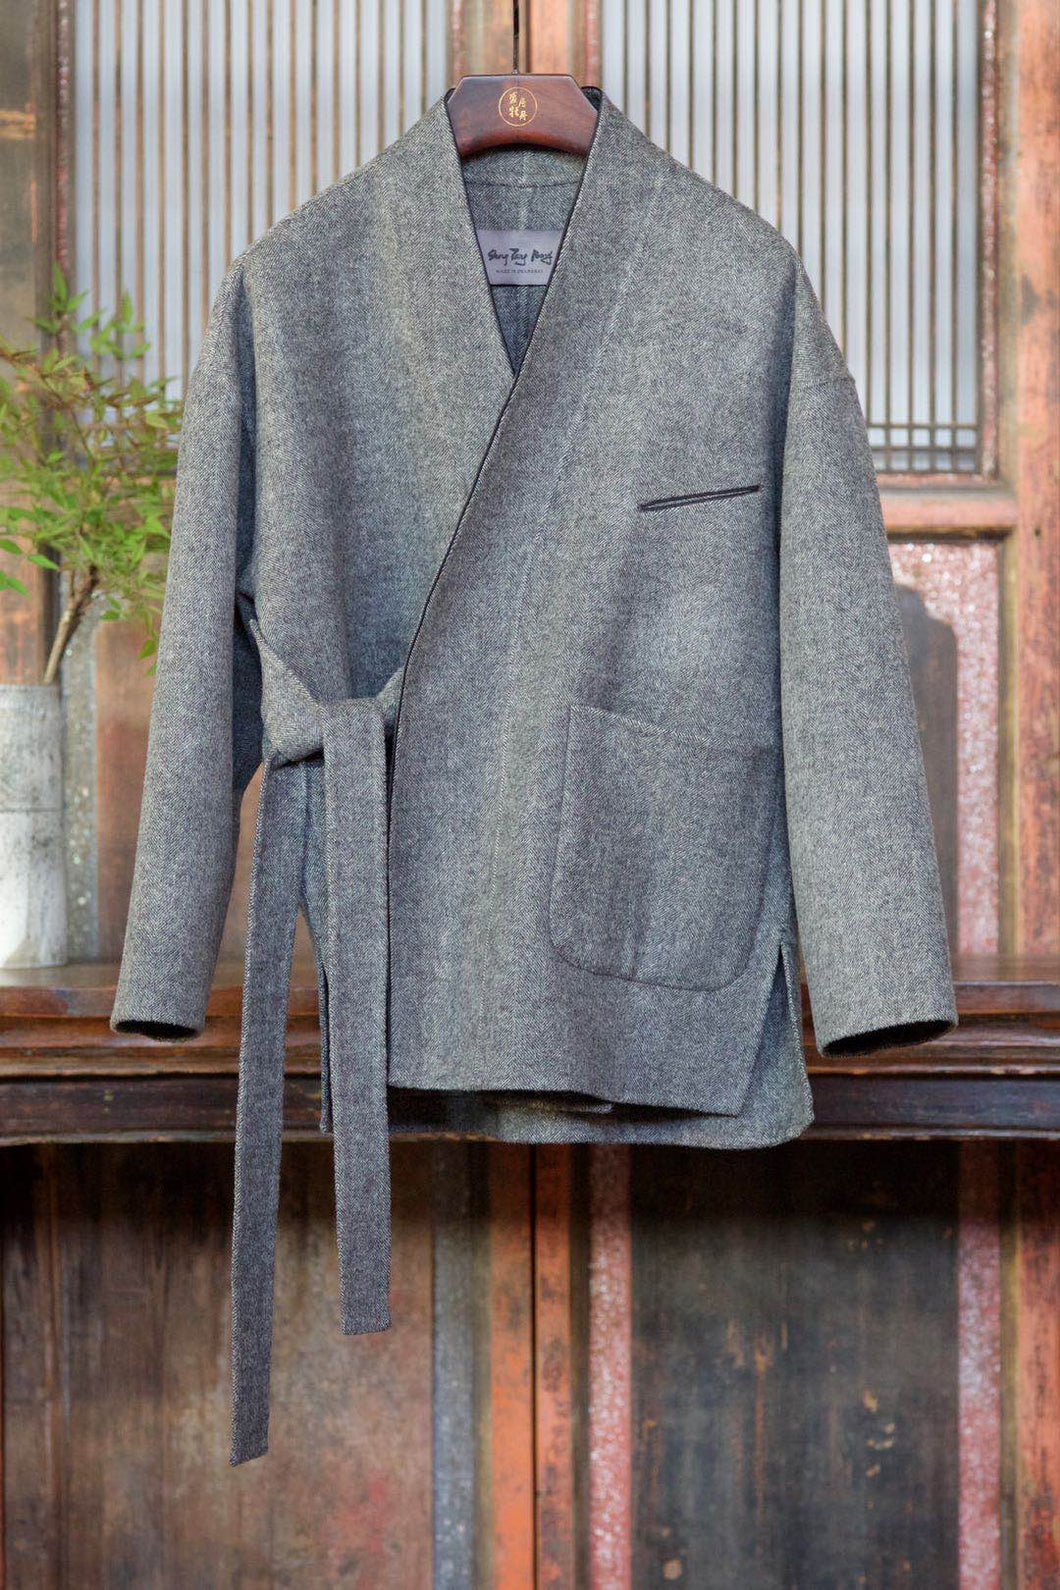 Men's Cashmere Coat w/ Removable Belts